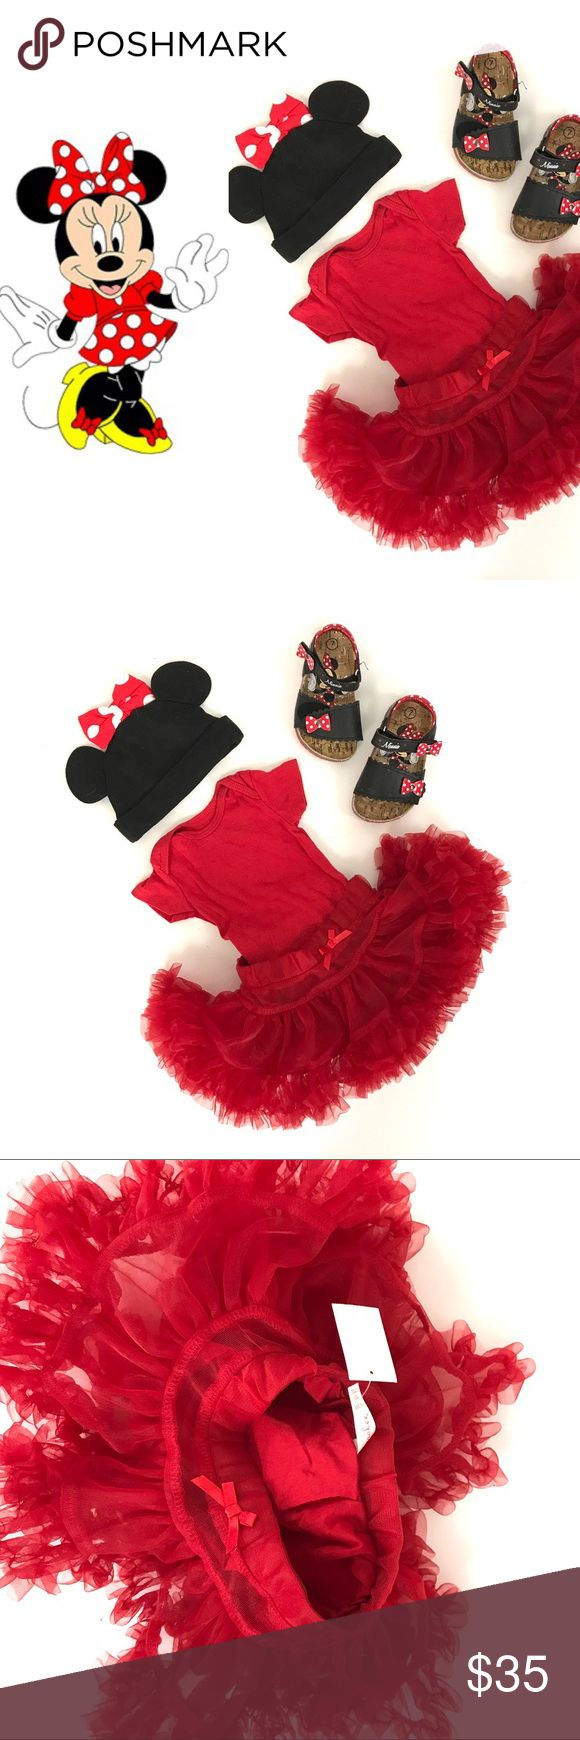 GIRL- Minnie Mouse Halloween costume COSTUME: Minnie Mouse SIZE: approx 3 months CONDITION: skirt-NWT hat Ears-NWOT onesie-gently used # OF PIECES 3 (Shoes sold separately) AVL COSTUME MATCHES? Yes adult Mickey and Minnie, and other child/baby Mickey and Minnie costumes Costumes Halloween